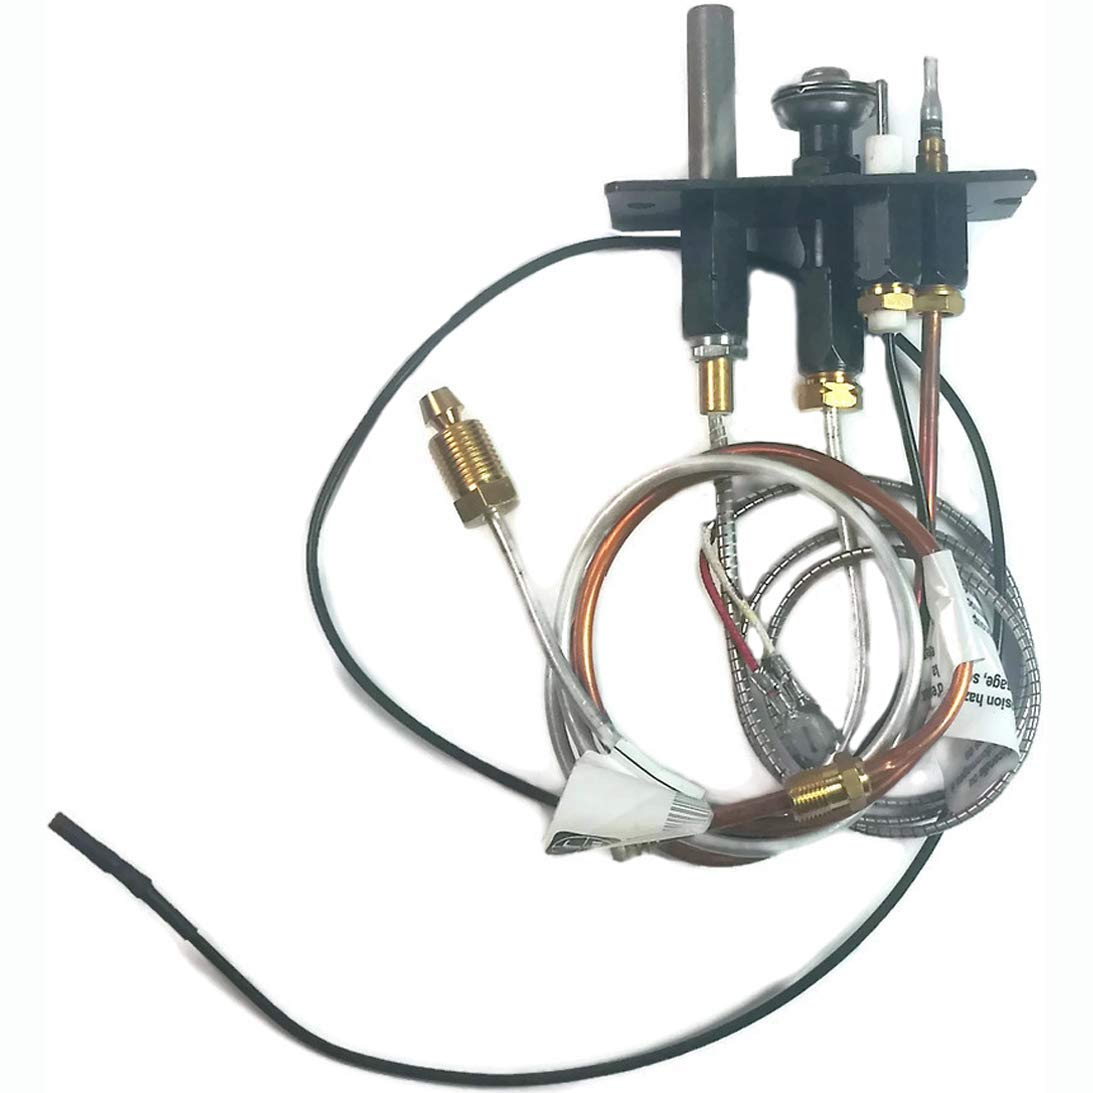 The Best Reliance Pilot Assembly For Ao Smith Promax Water